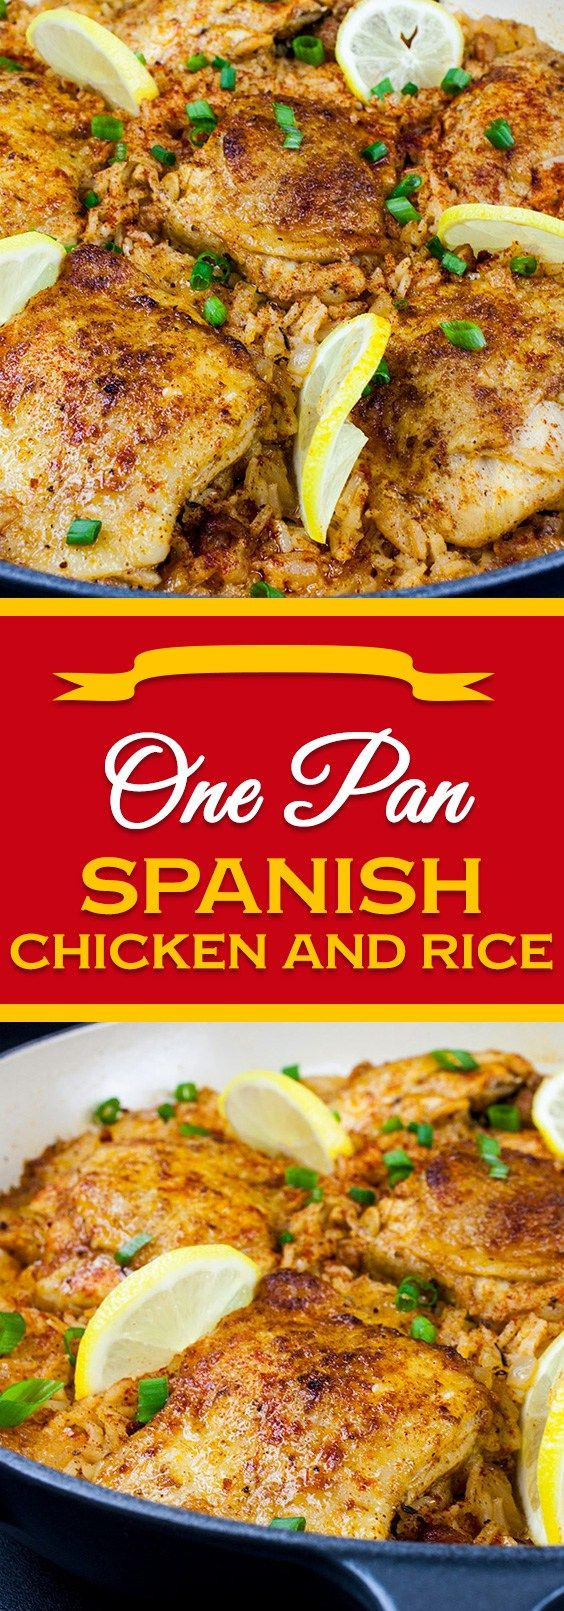 One Pan Spanish Chicken and Rice - Crispy zesty chicken nestled in bold mouthwatering, flavorful rice.A fabulous one-pan-meal.#dinner